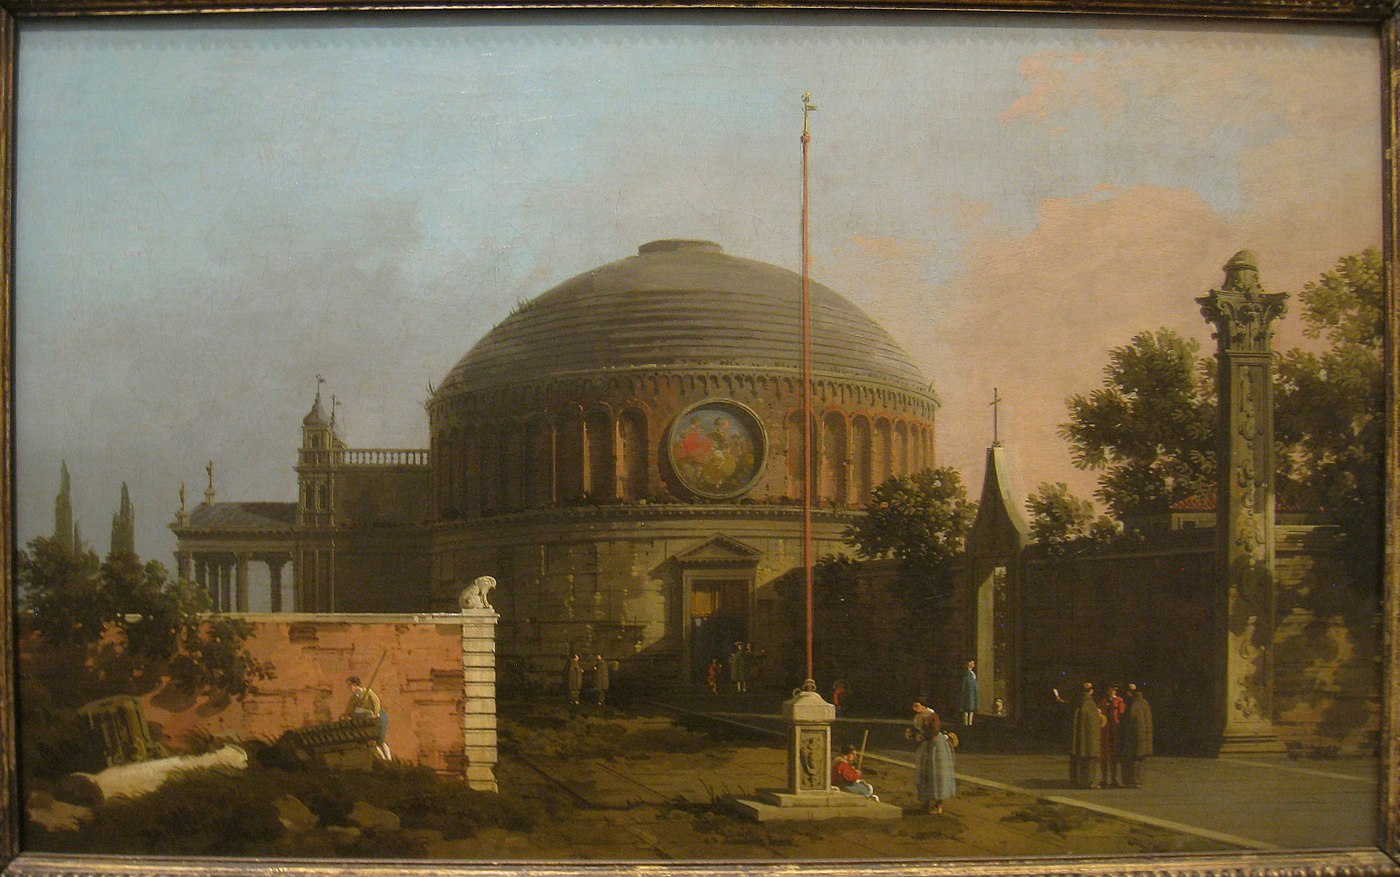 Capriccio: A Circular, Domed Church